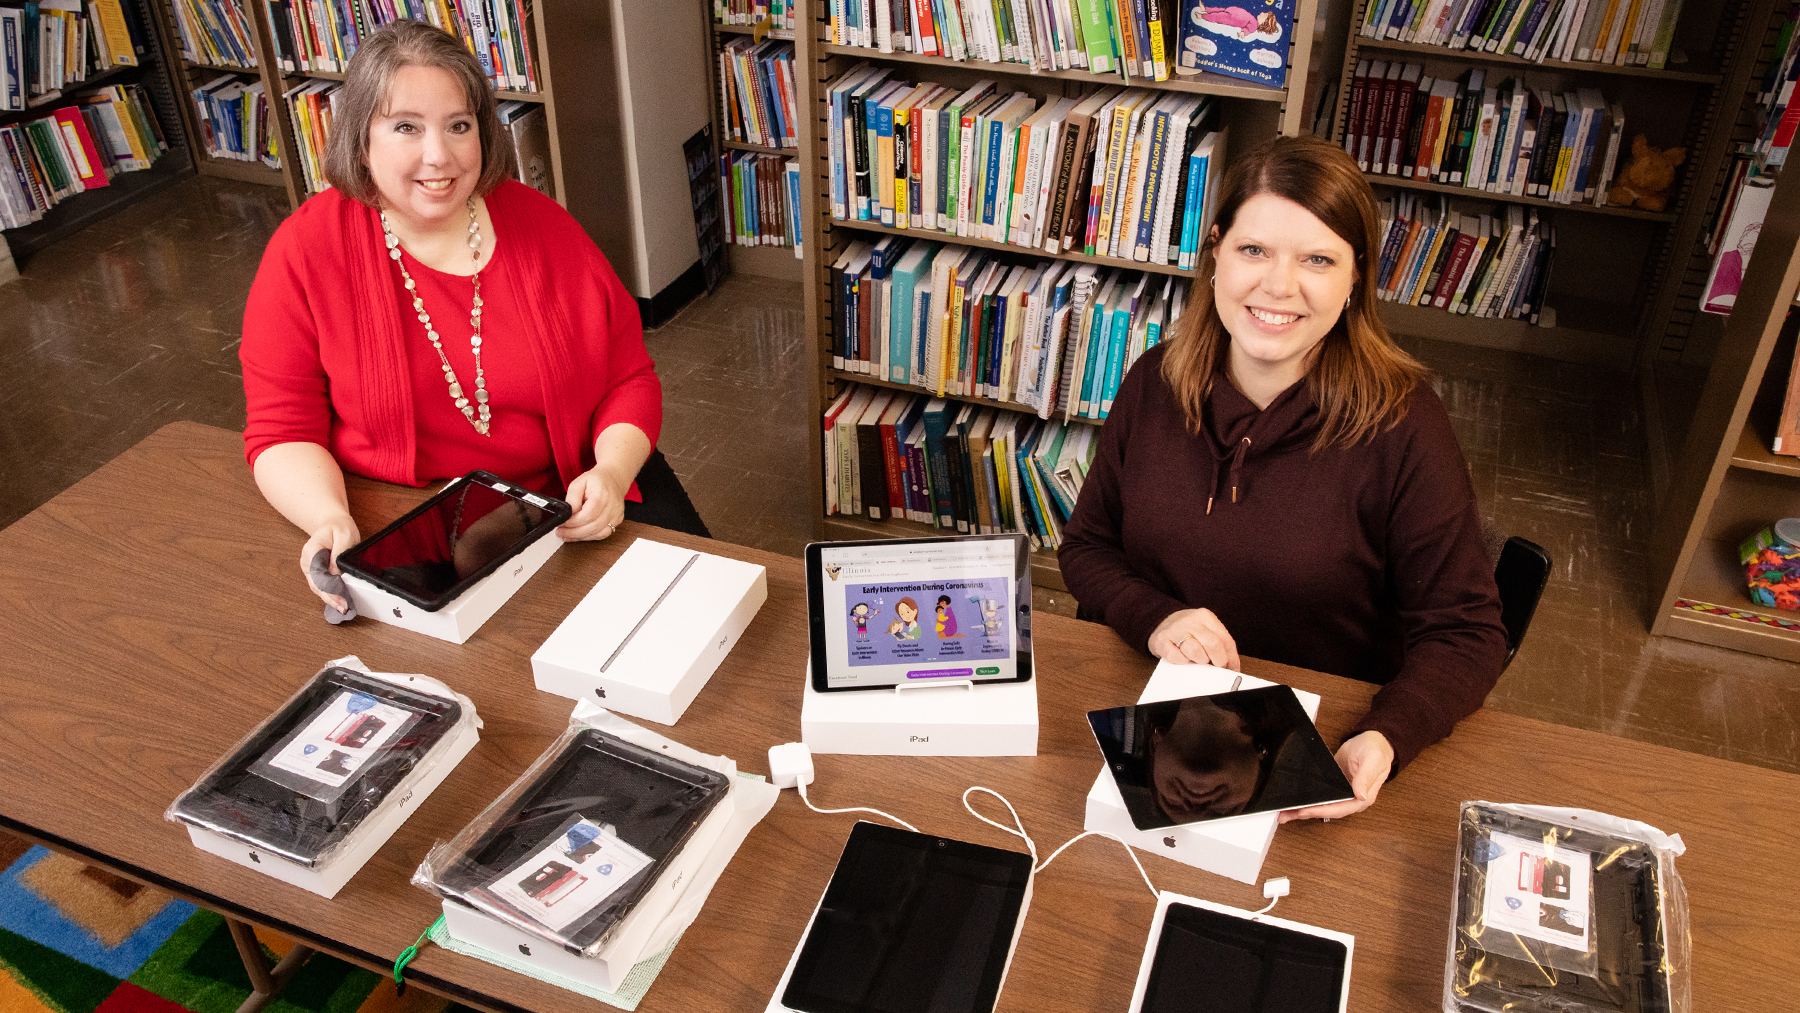 Sarah Isaacs, the librarian of the Early Intervention Clearinghouse, and research information specialist Jill Tompkins show some of the tablet computers and Wi-Fi hotspots that families of infants and children with disabilities or delays can borrow for telehealth visits with providers of early intervention services.